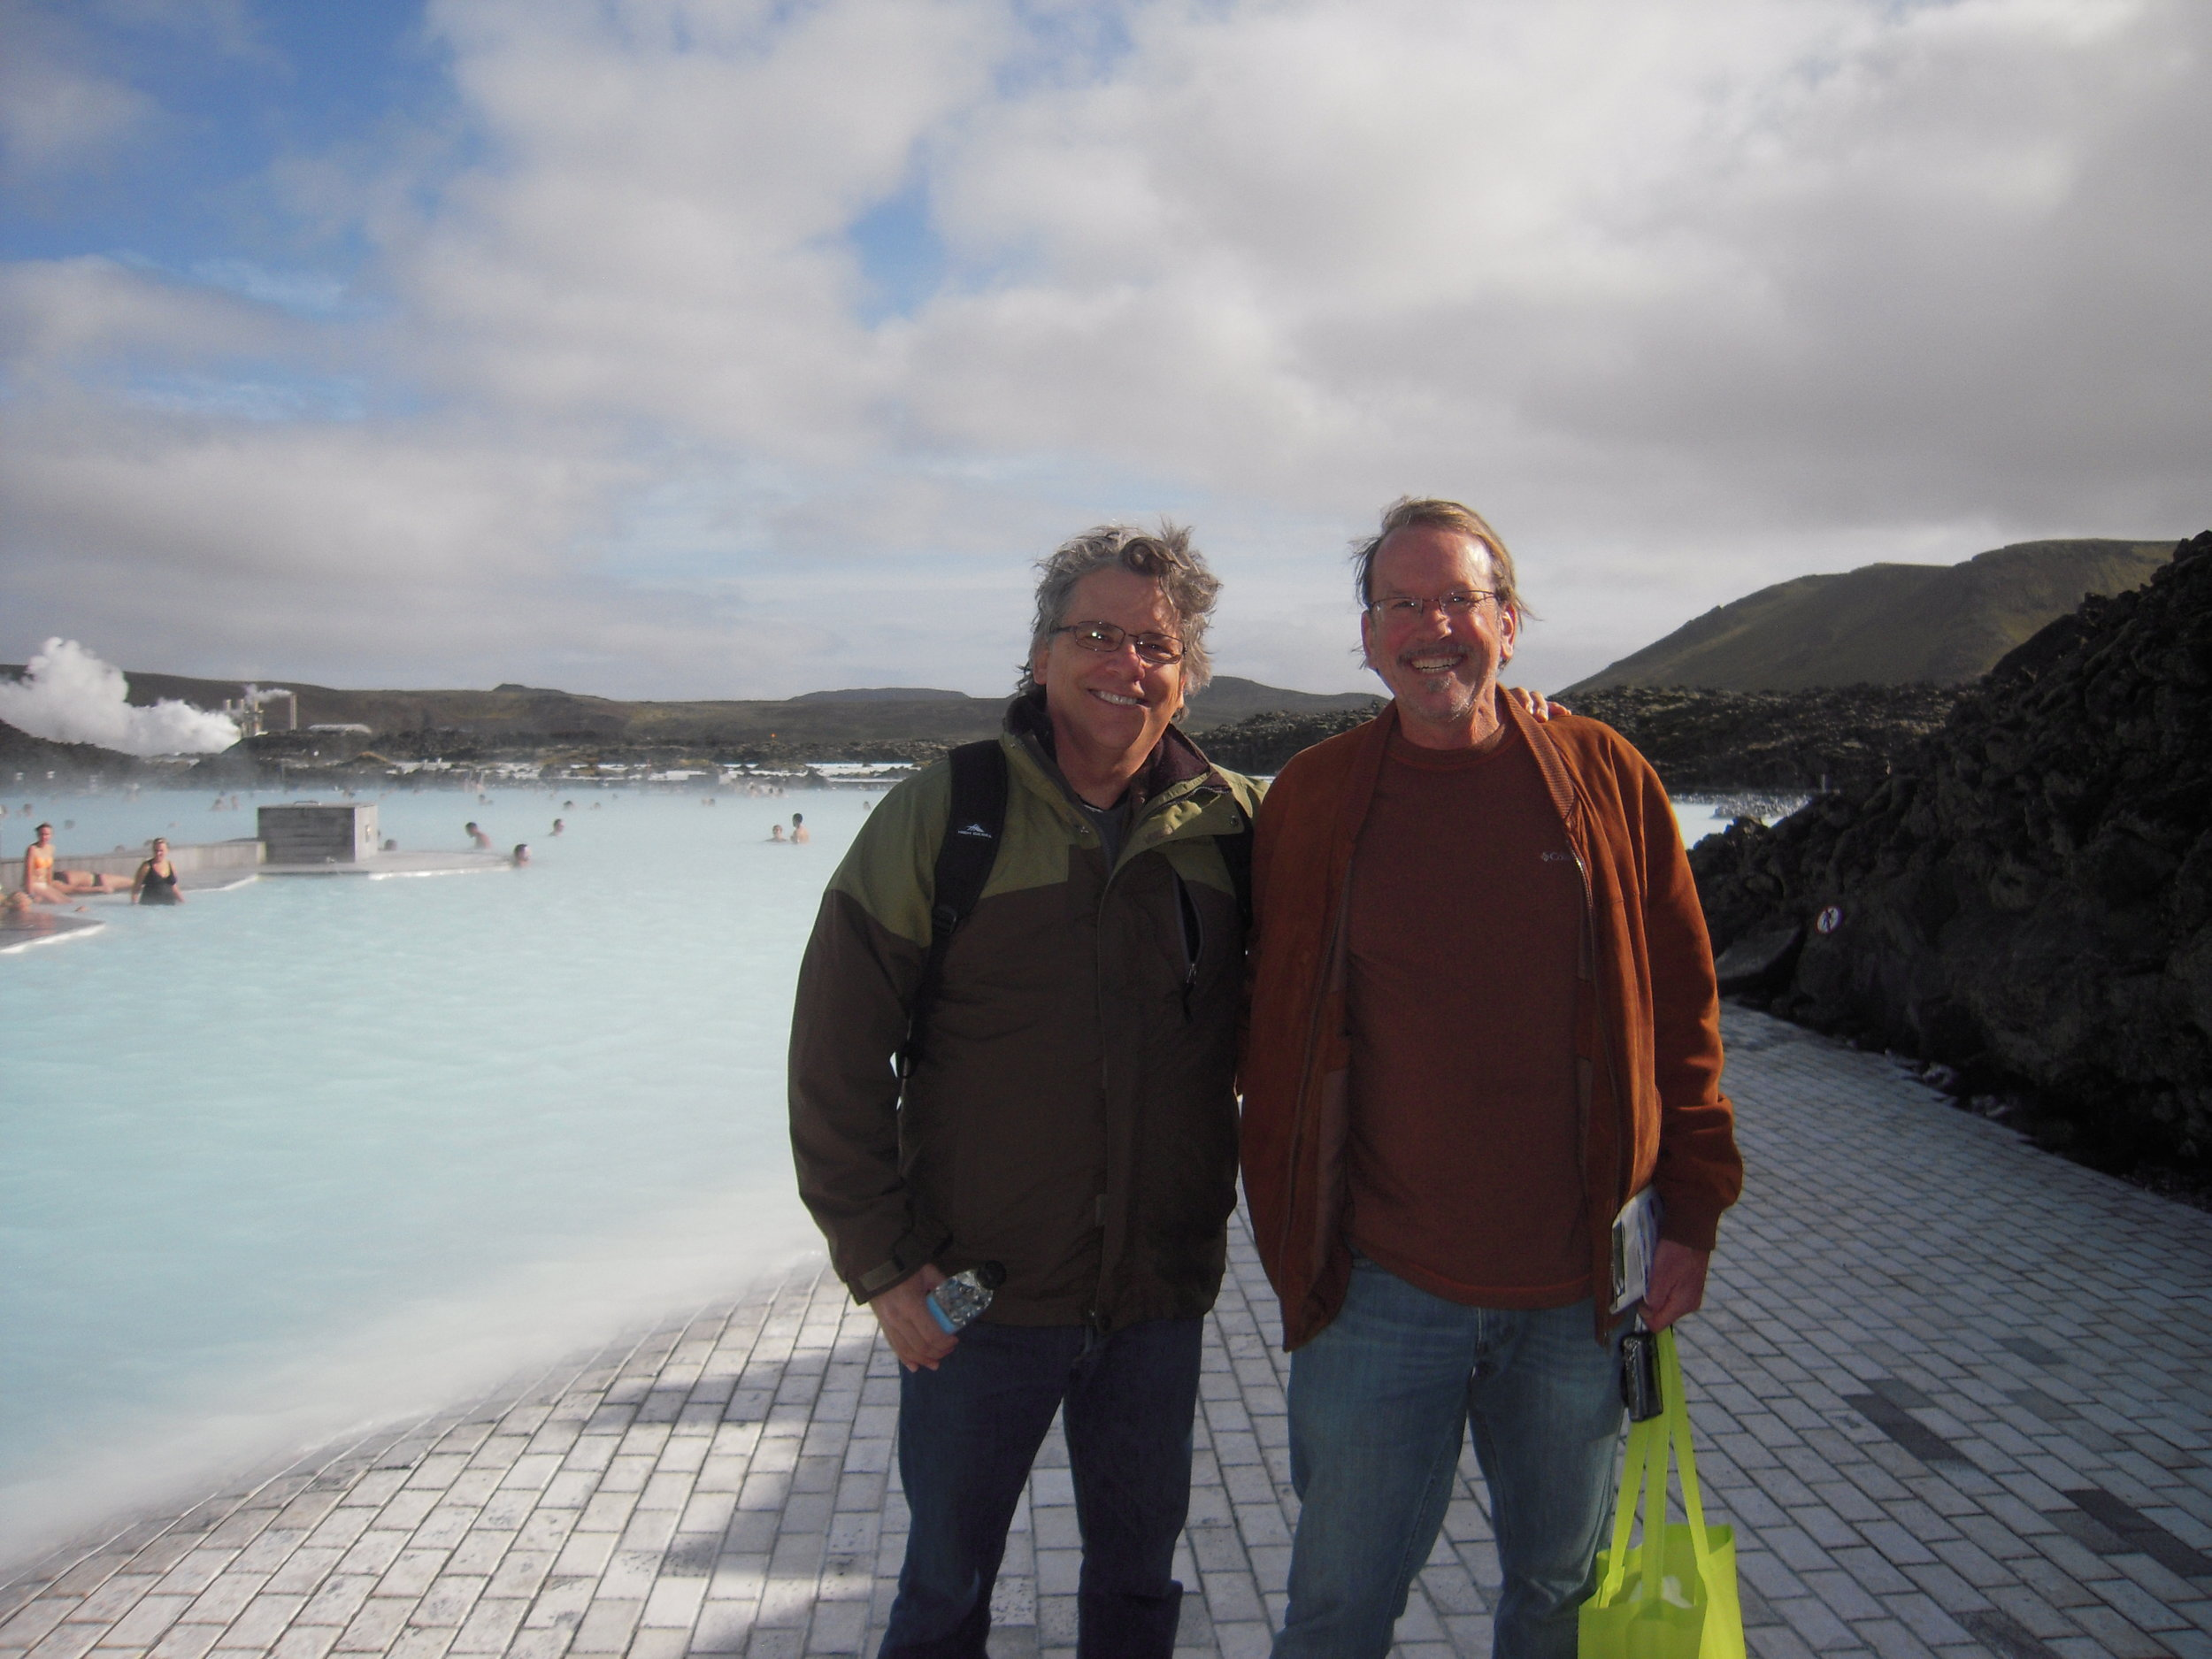 At the Blue Lagoon south of Reykjavik, Iceland. The water is rich in silica and sulfur and other minerals.